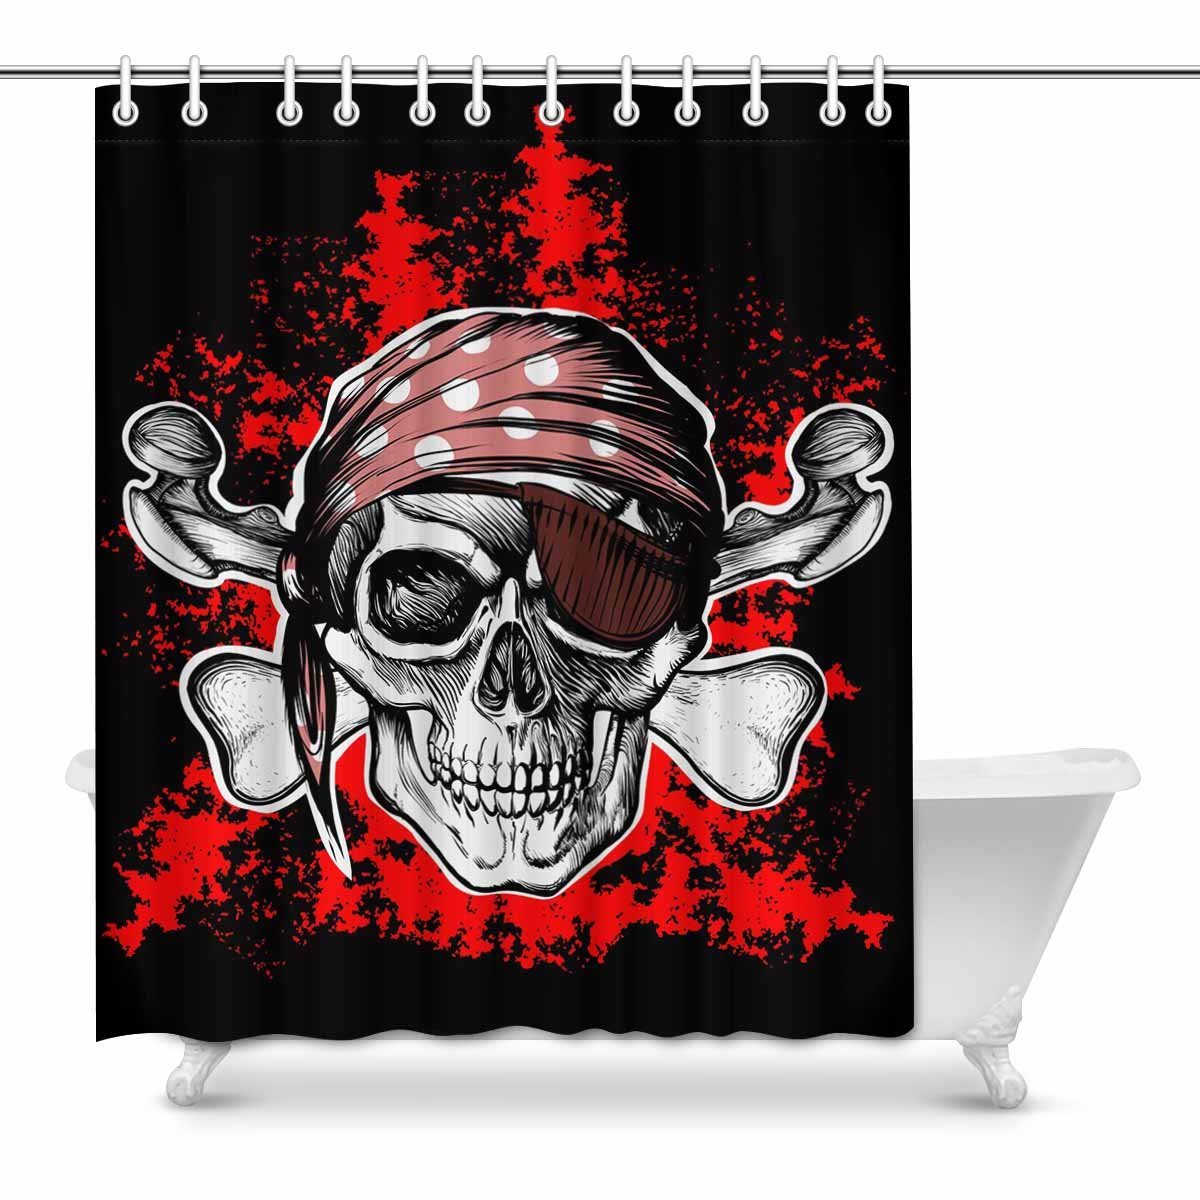 Aplysia Jolly Roger Pirate Symbol With Crossed Daggers On The Black And Red Bathroom Shower Curtains In From Home Garden Aliexpress